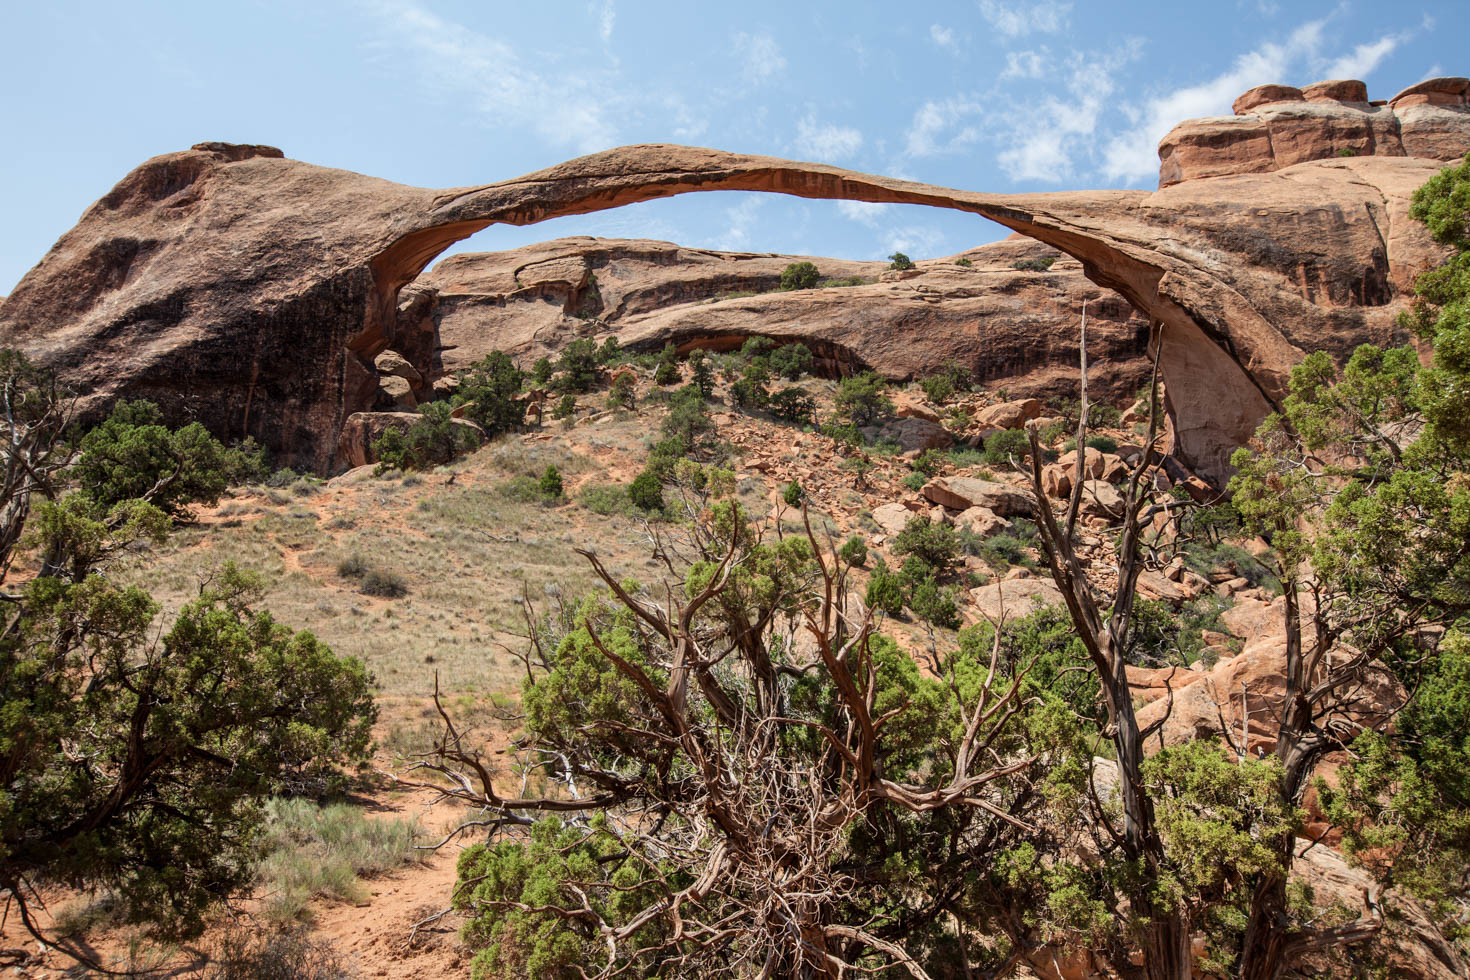 Landscape Arch, Arches National Park, Photo Credit: Vezzani Photography